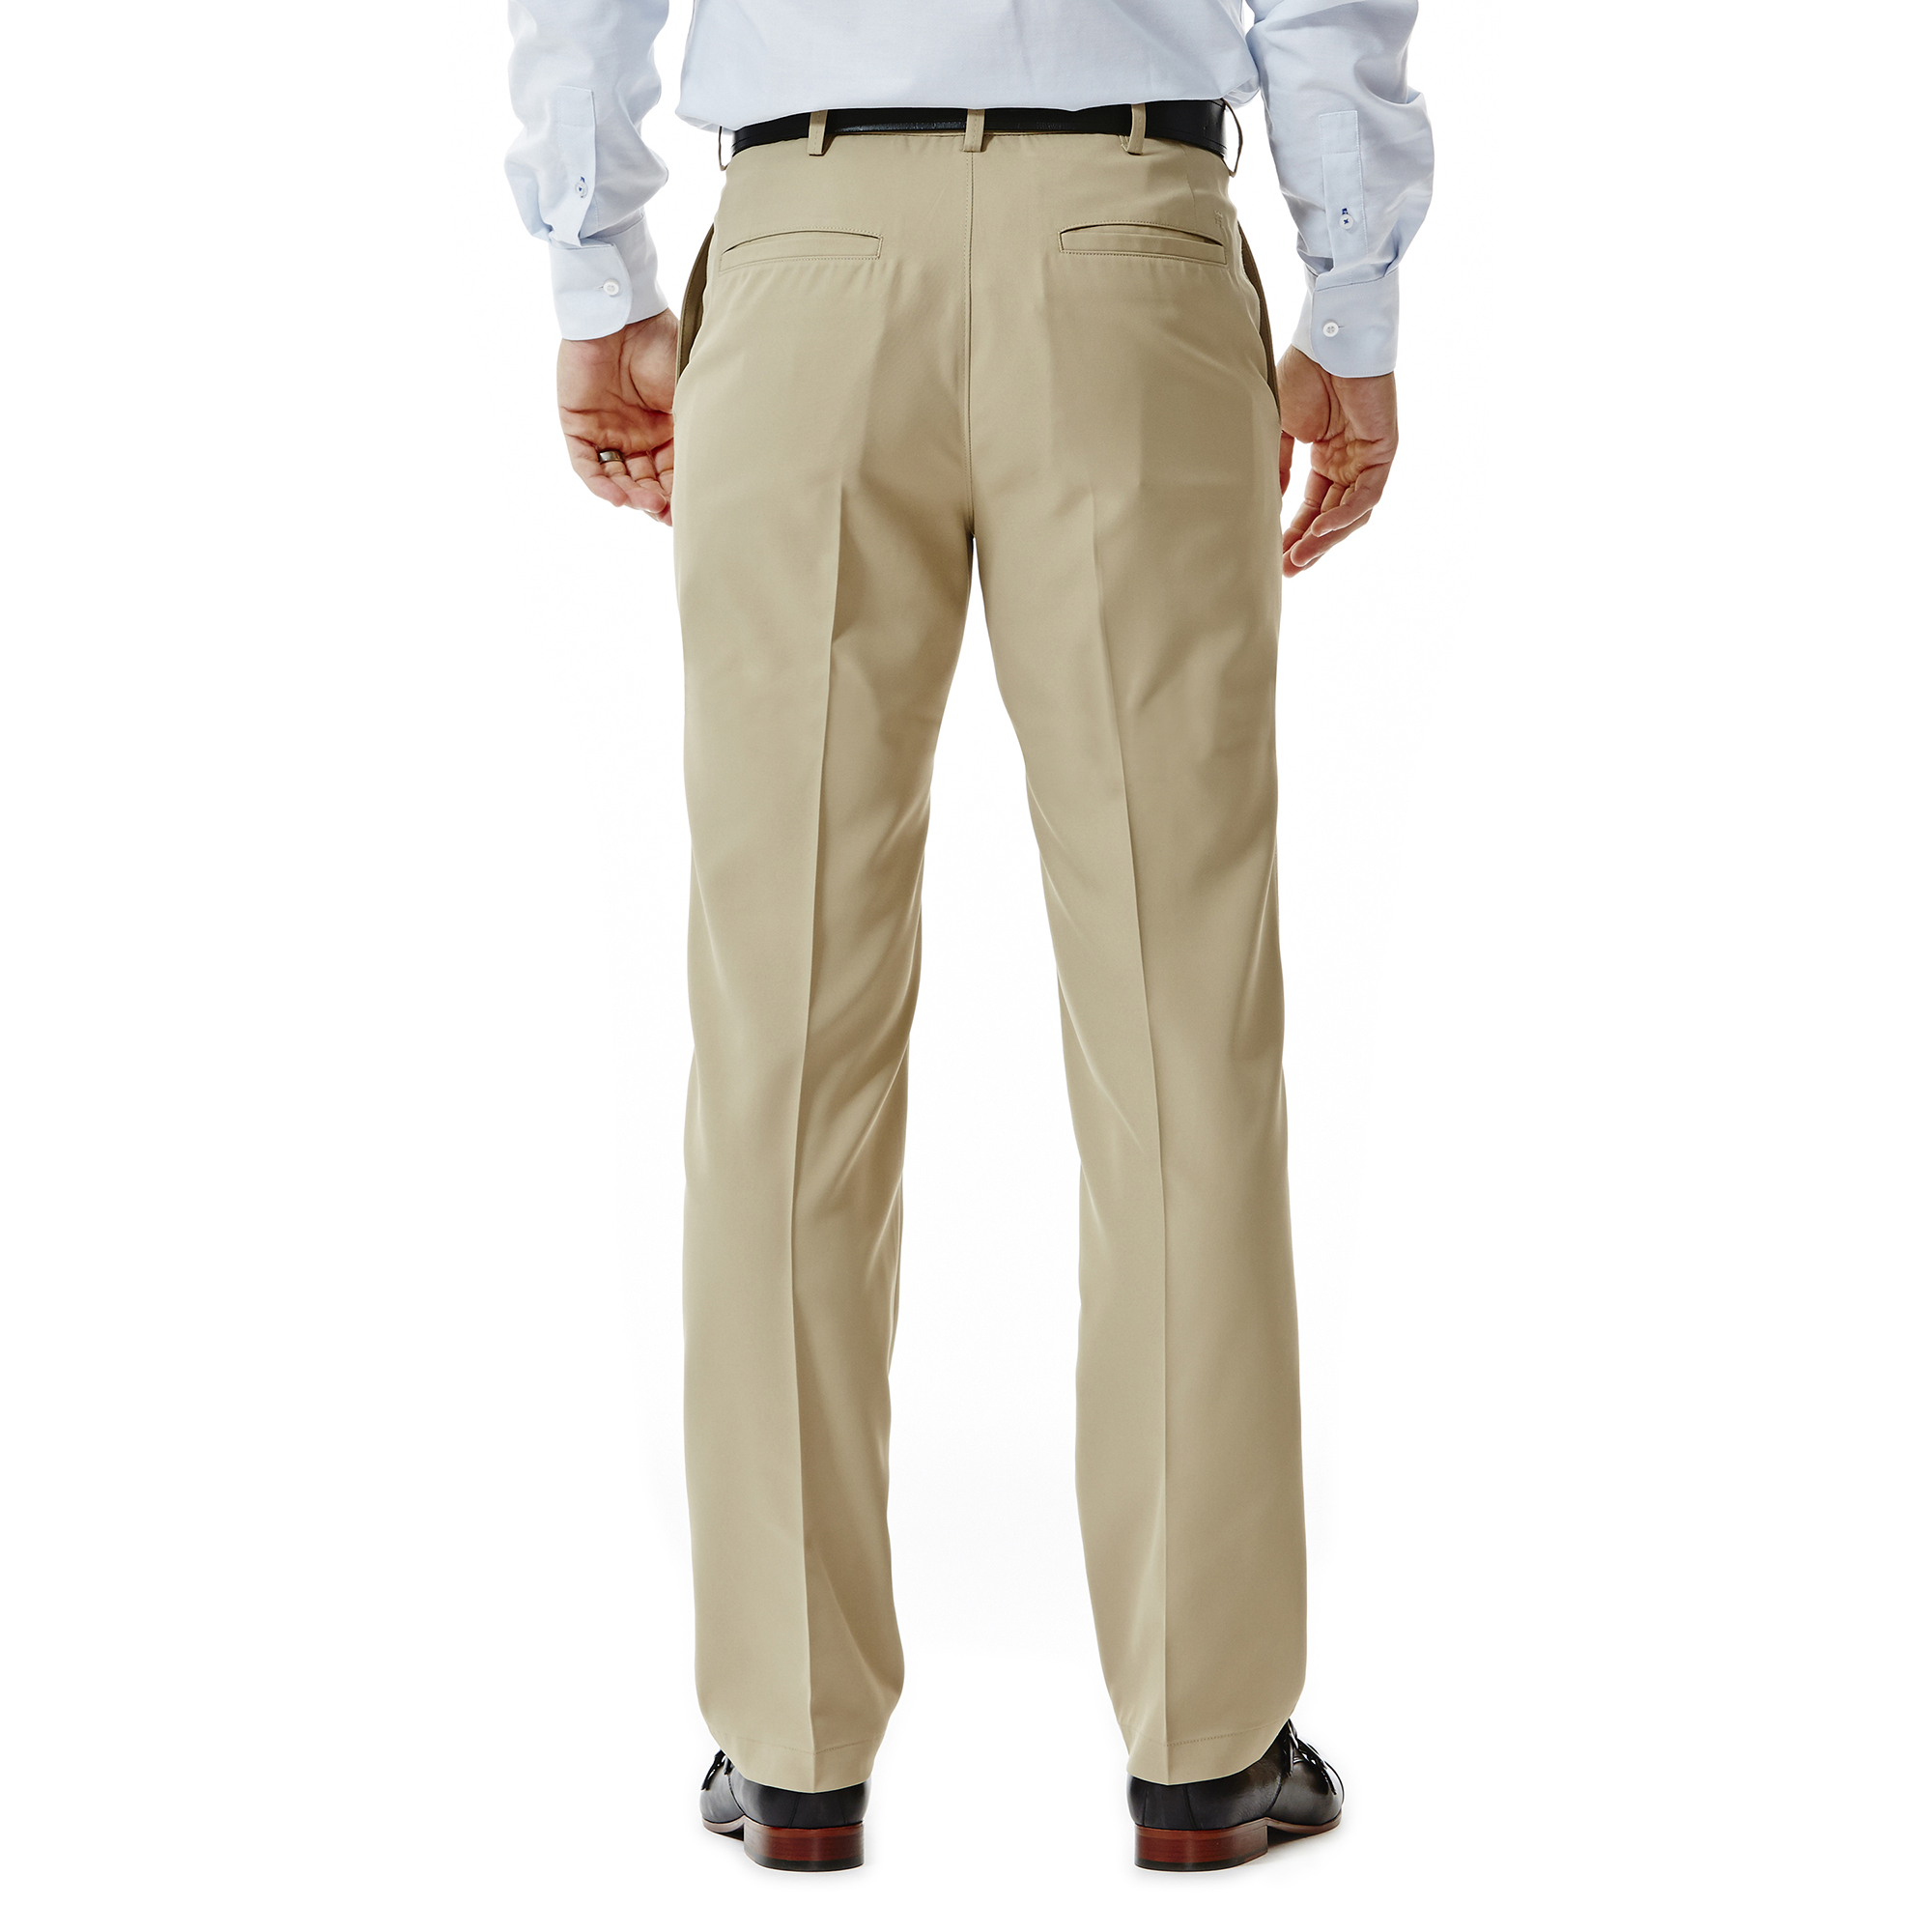 Haggar-Men-039-s-Performance-Microfiber-Flat-Front-Pant-Straight-Fit-HC10822